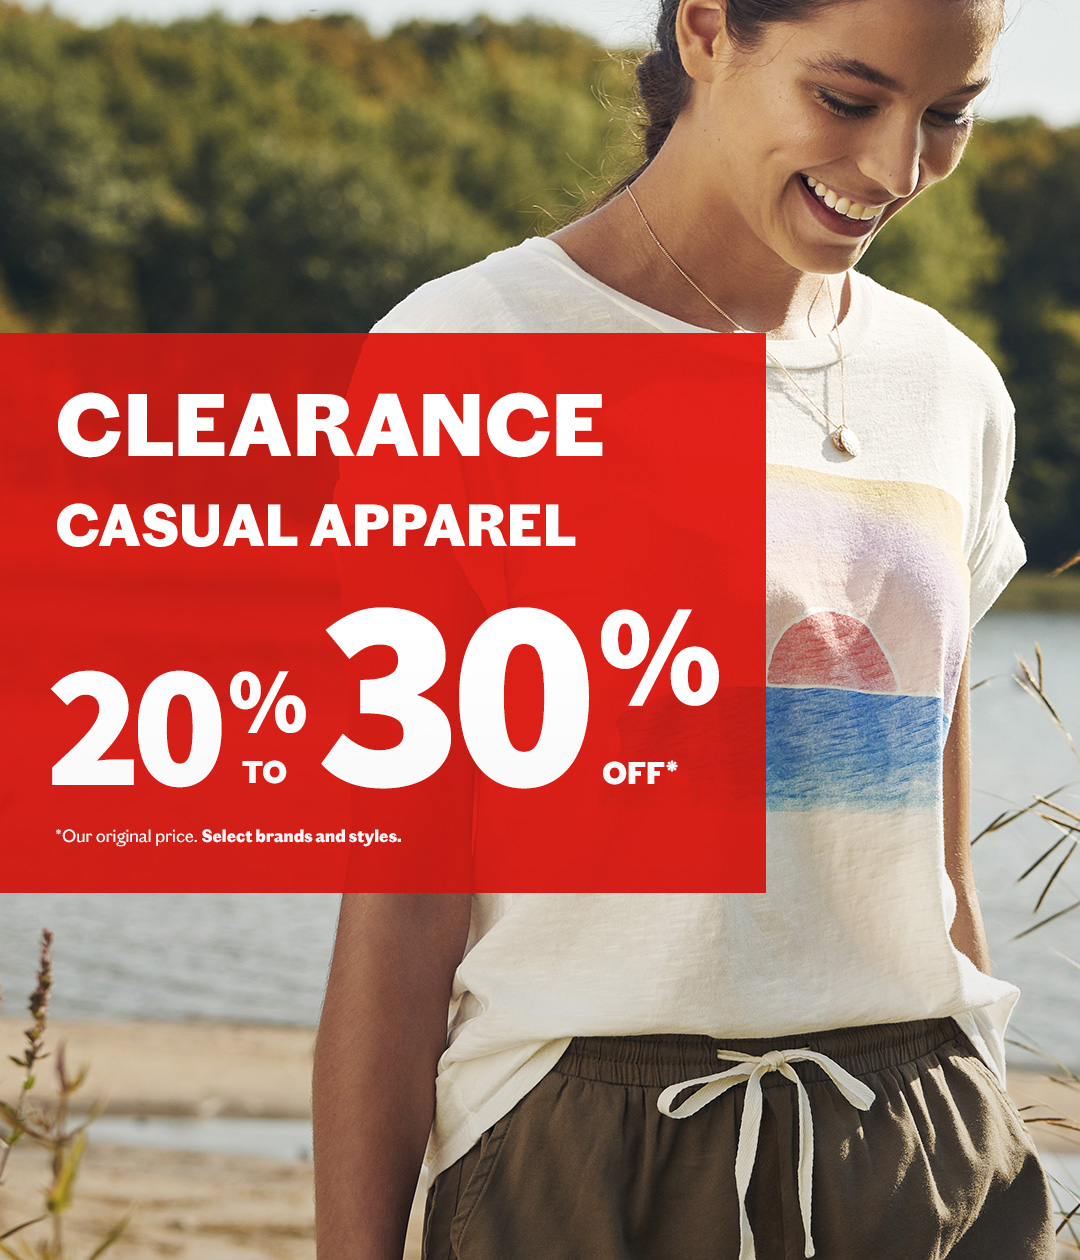 Clearance​ - Casual apparel